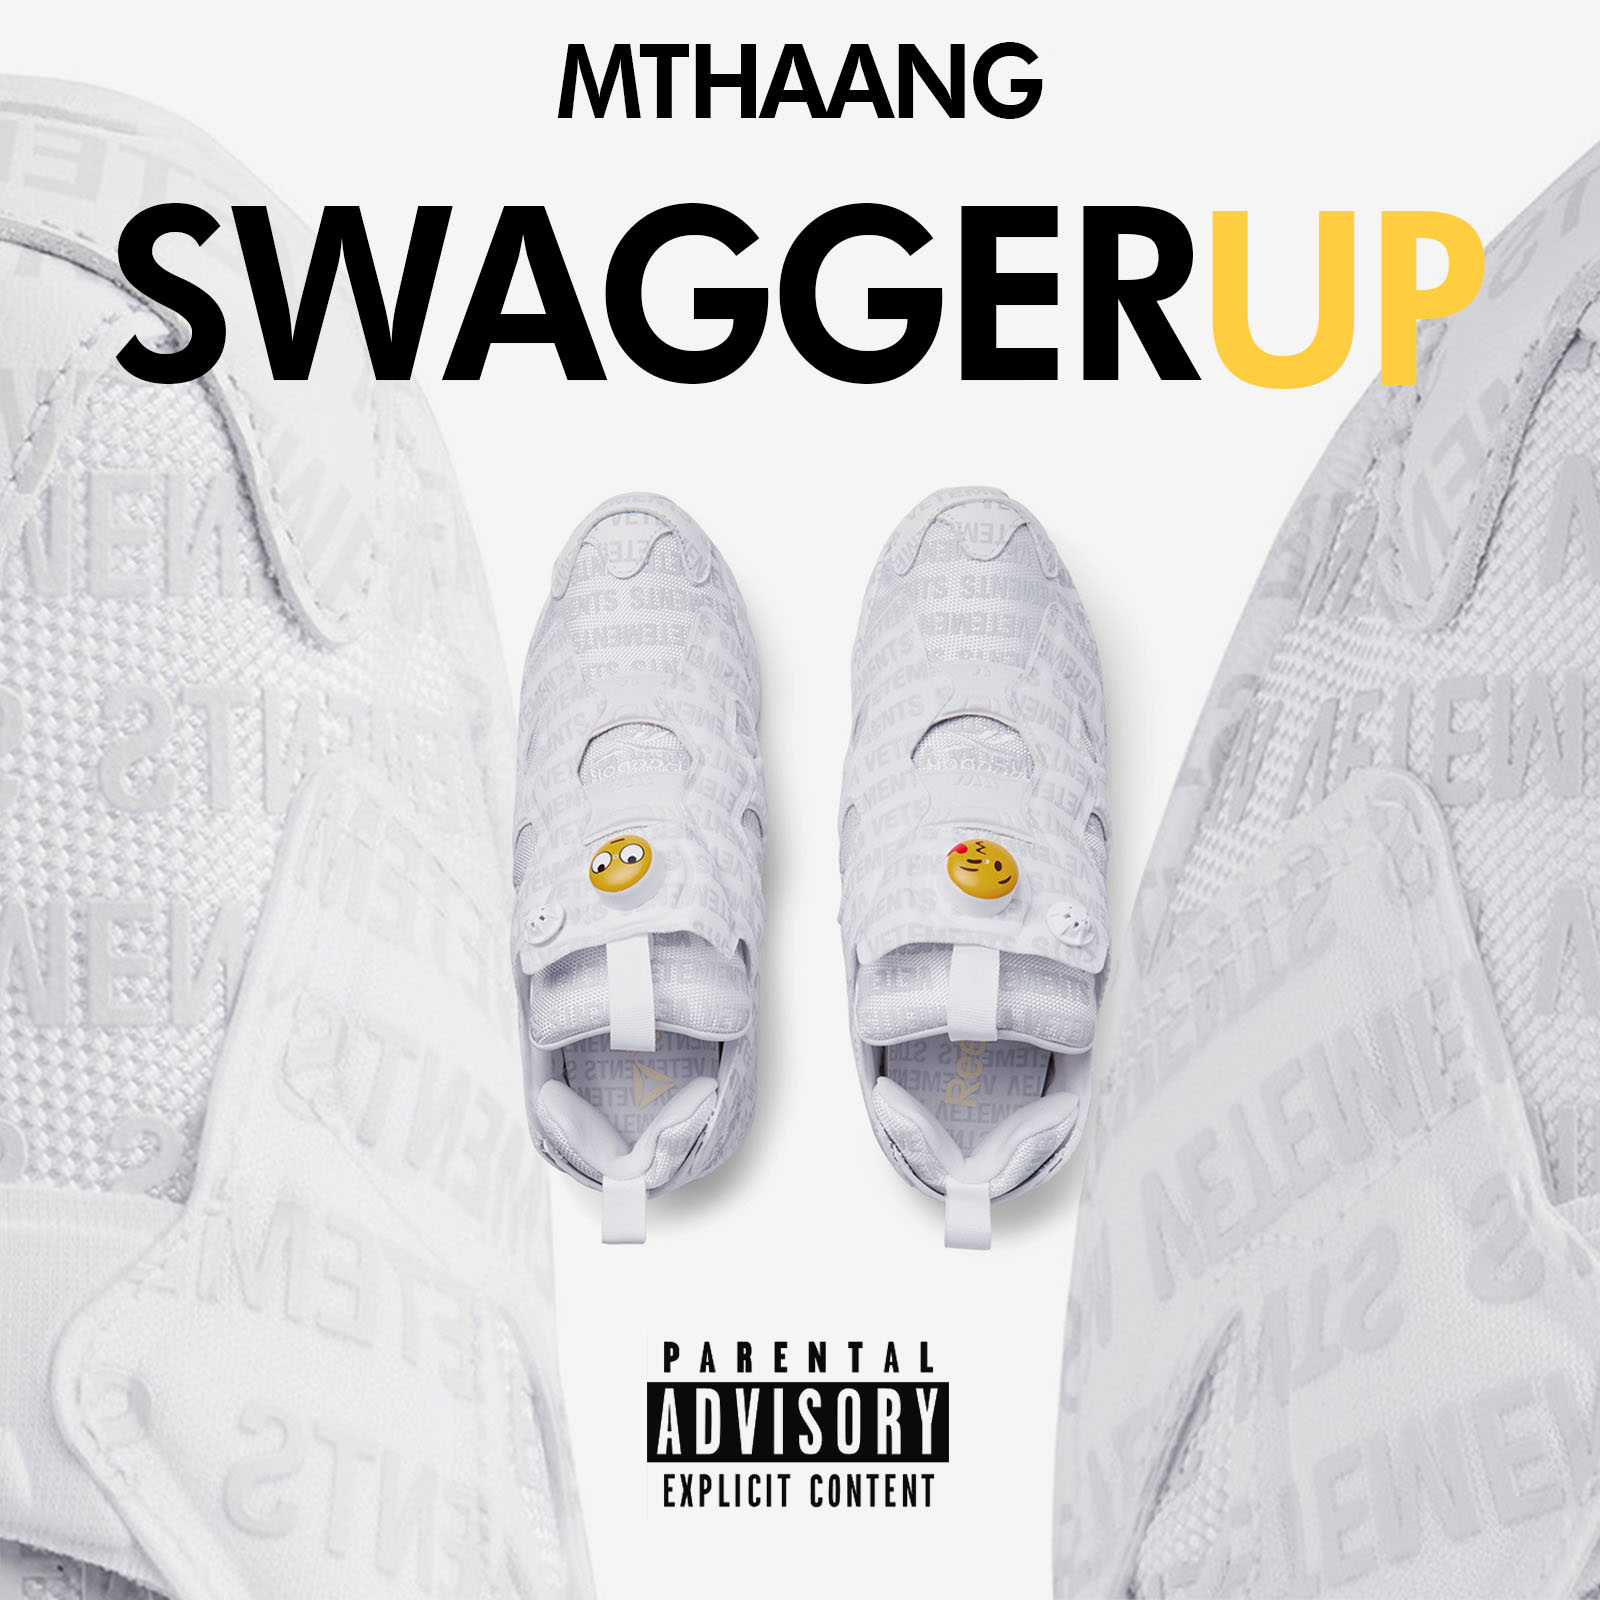 Swagger Up - by Mthaang